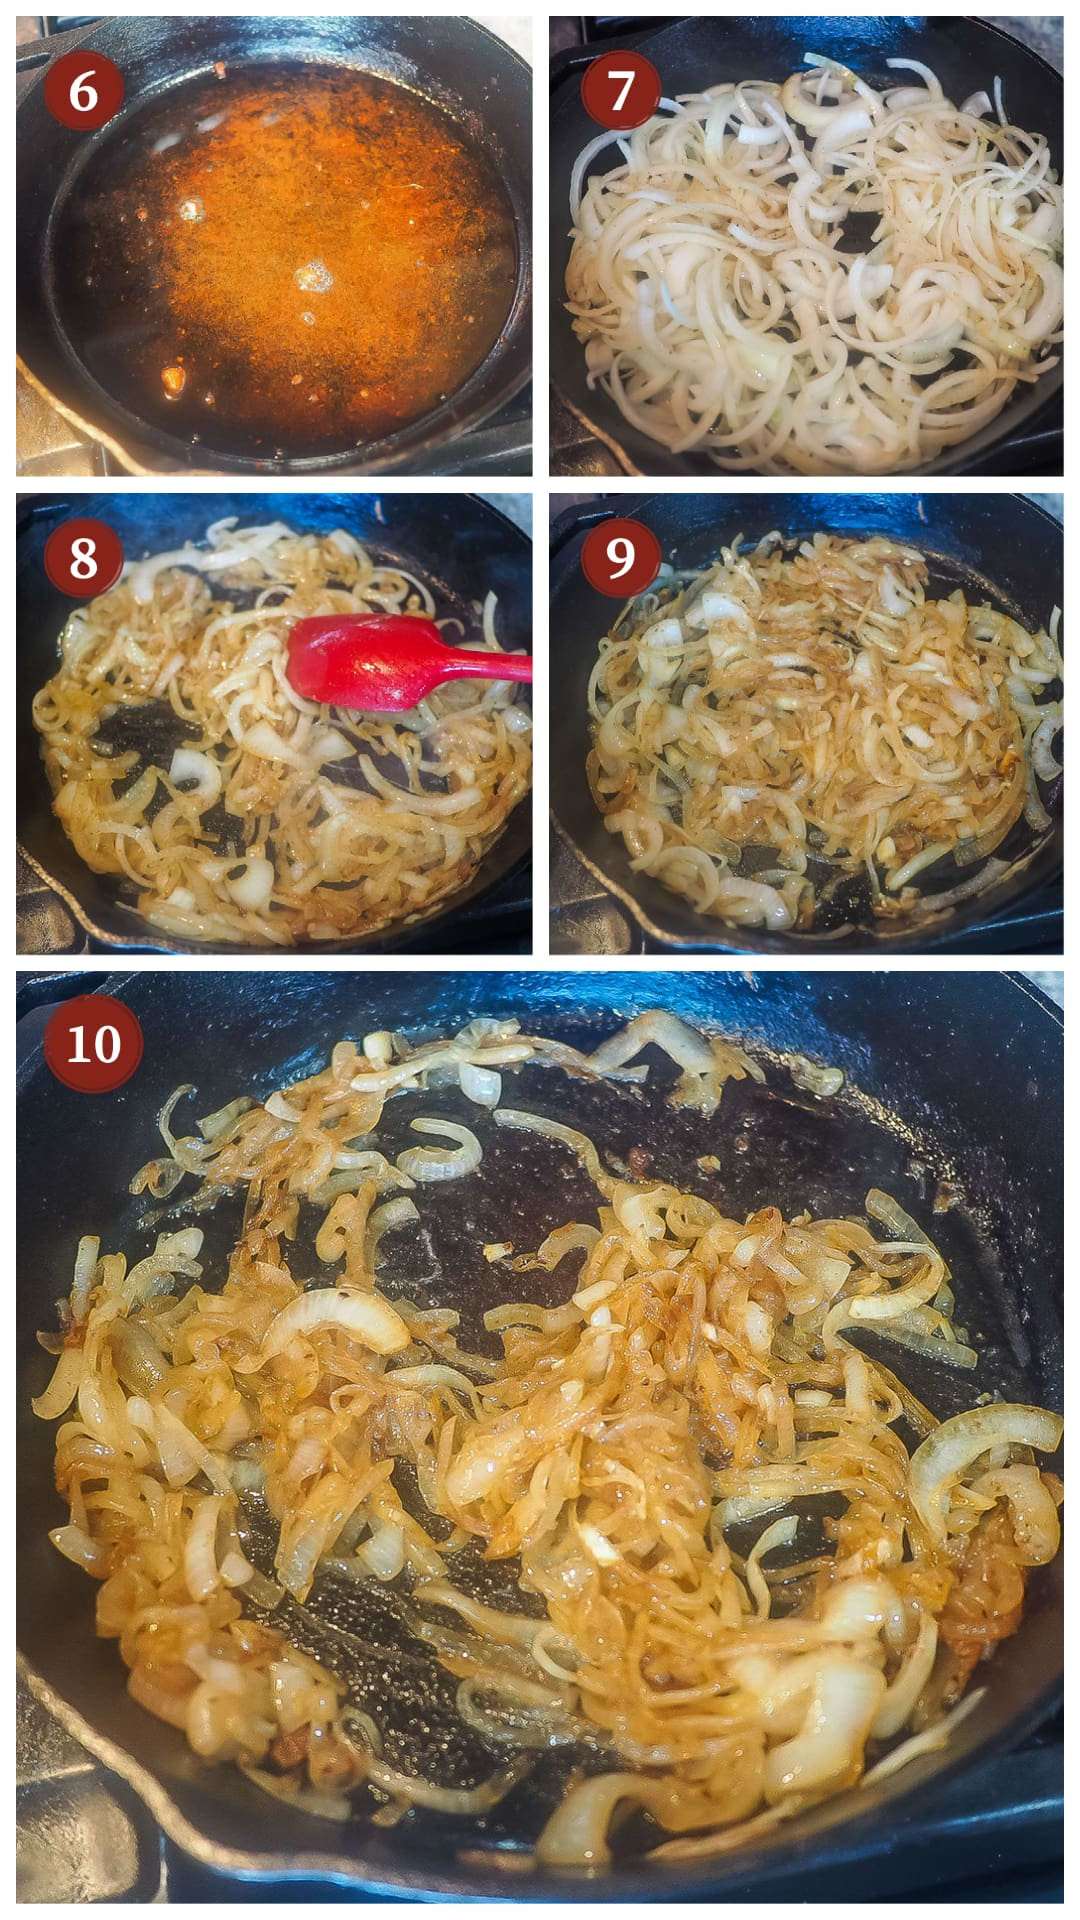 A collage of images showing how to make bacon onion jam steps 6 - 10.